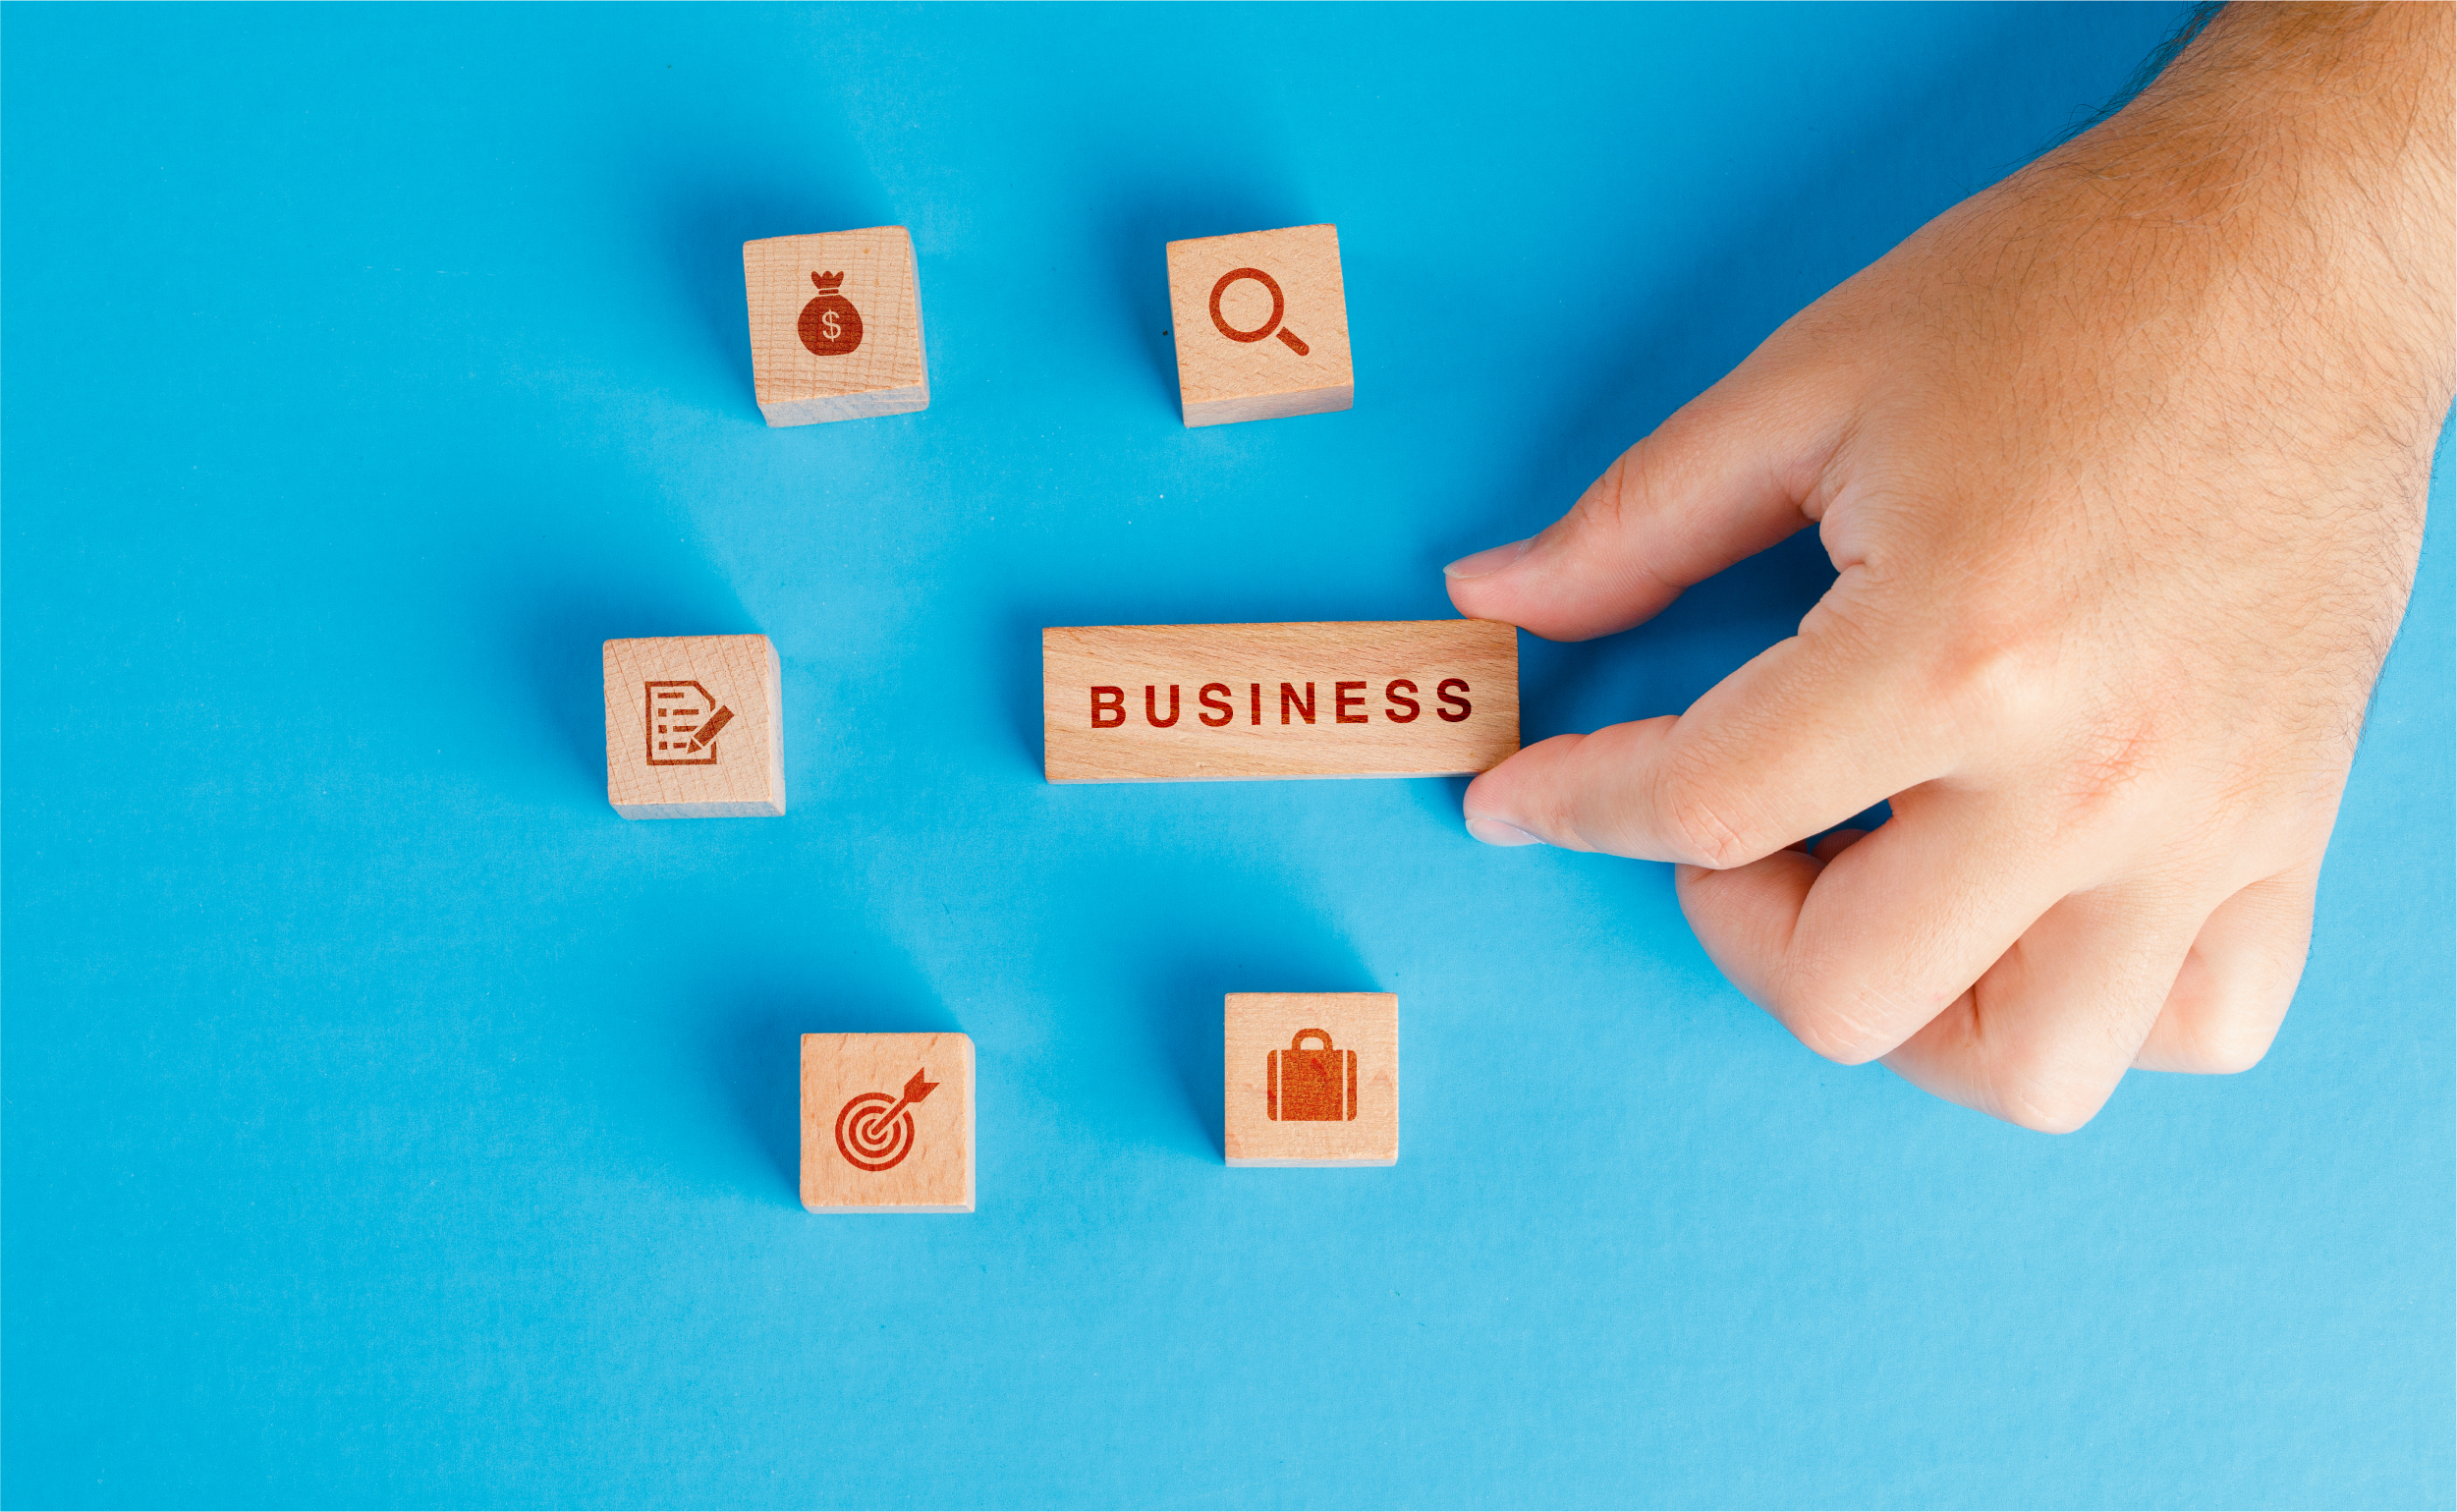 business-concept-with-icons-wooden-cubes-blue-table-flat-lay-hand-holding-wooden-block | botkeeper